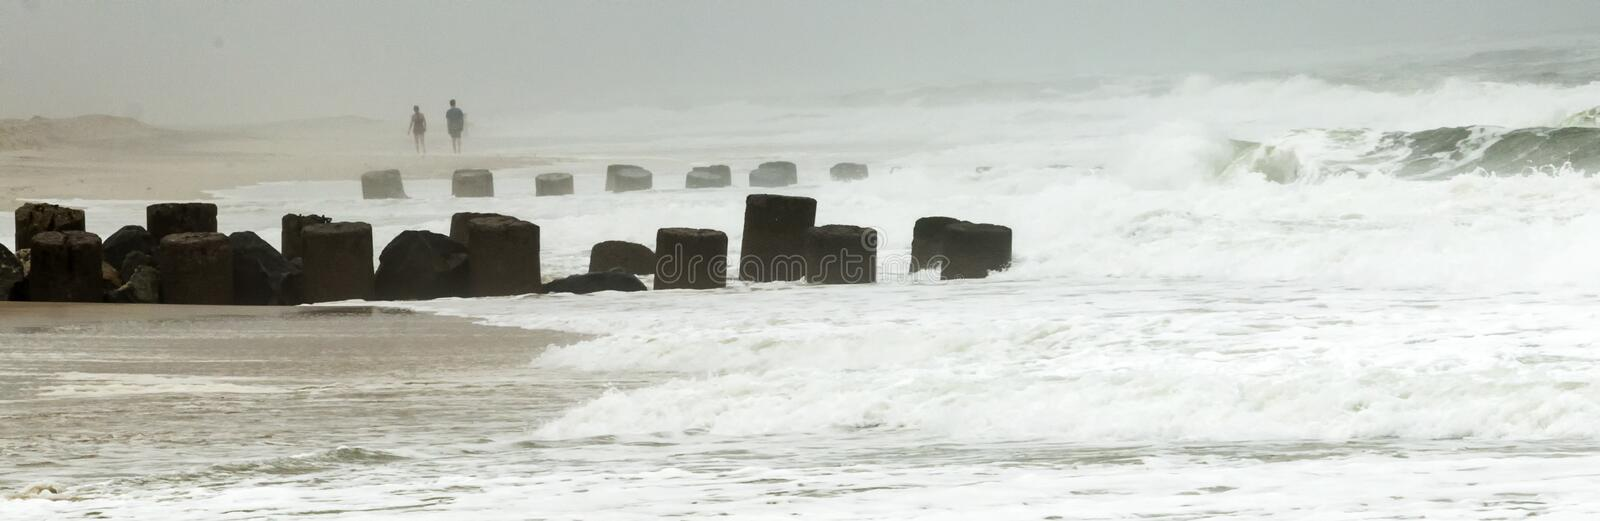 Rough water breaks over a jetty during a storm royalty free stock photo